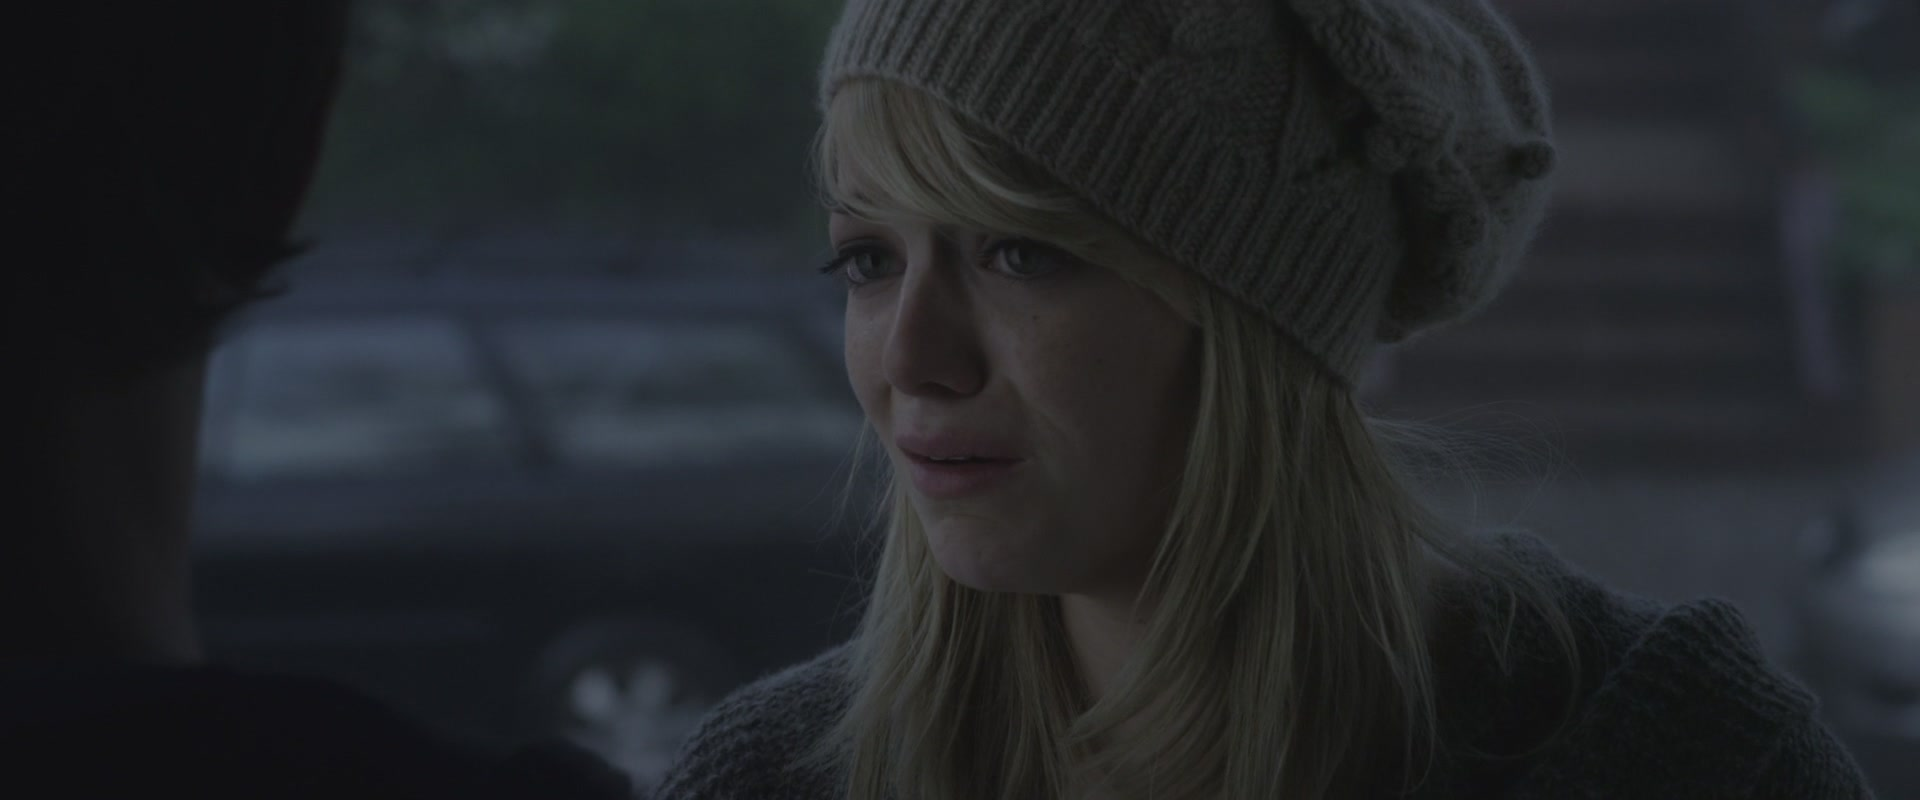 The Amazing Spider-Man (2012) - Peter Parker & Gwen Stacy ...